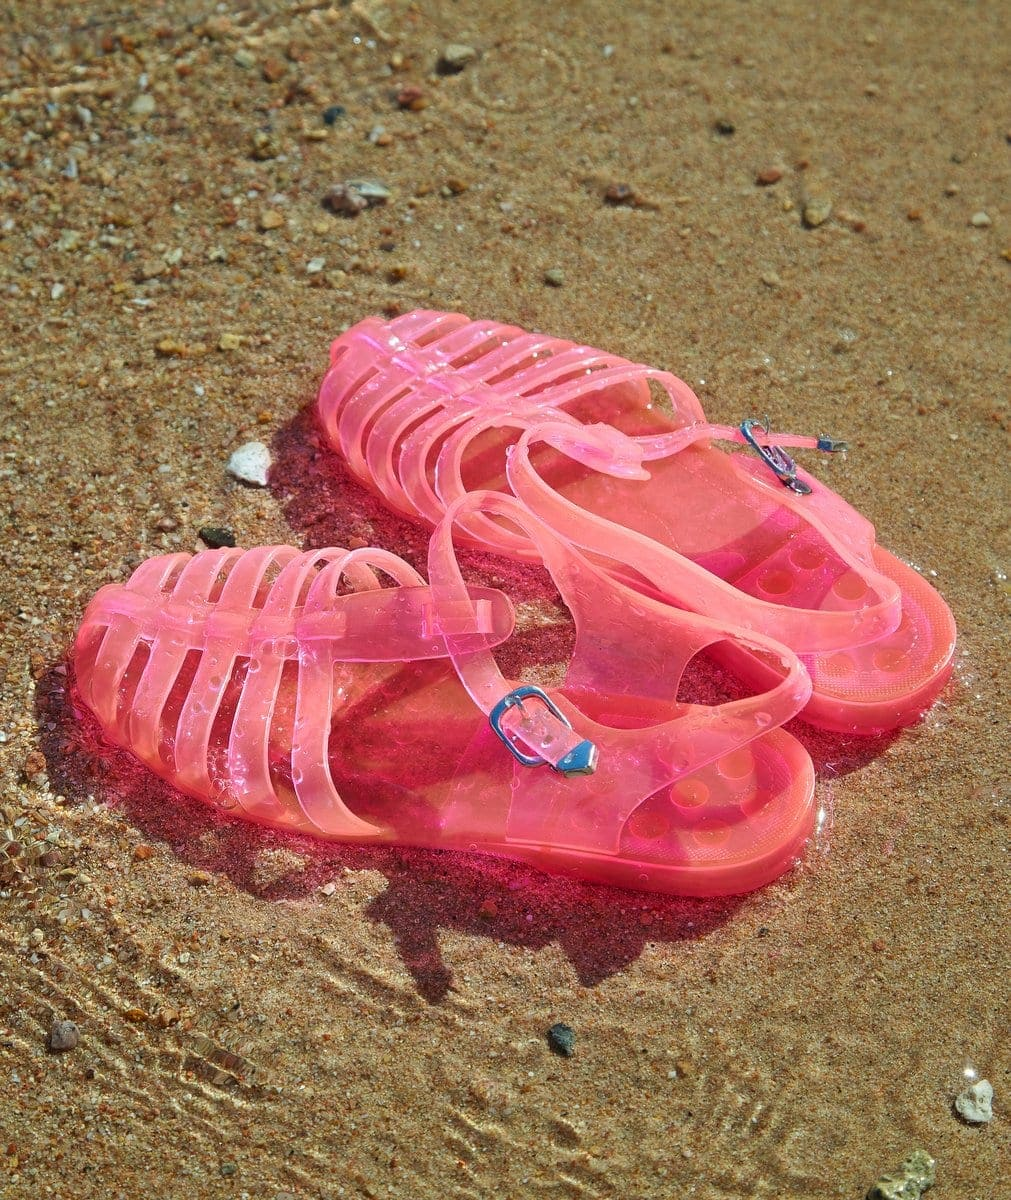 Pink jelly shoes on the beach